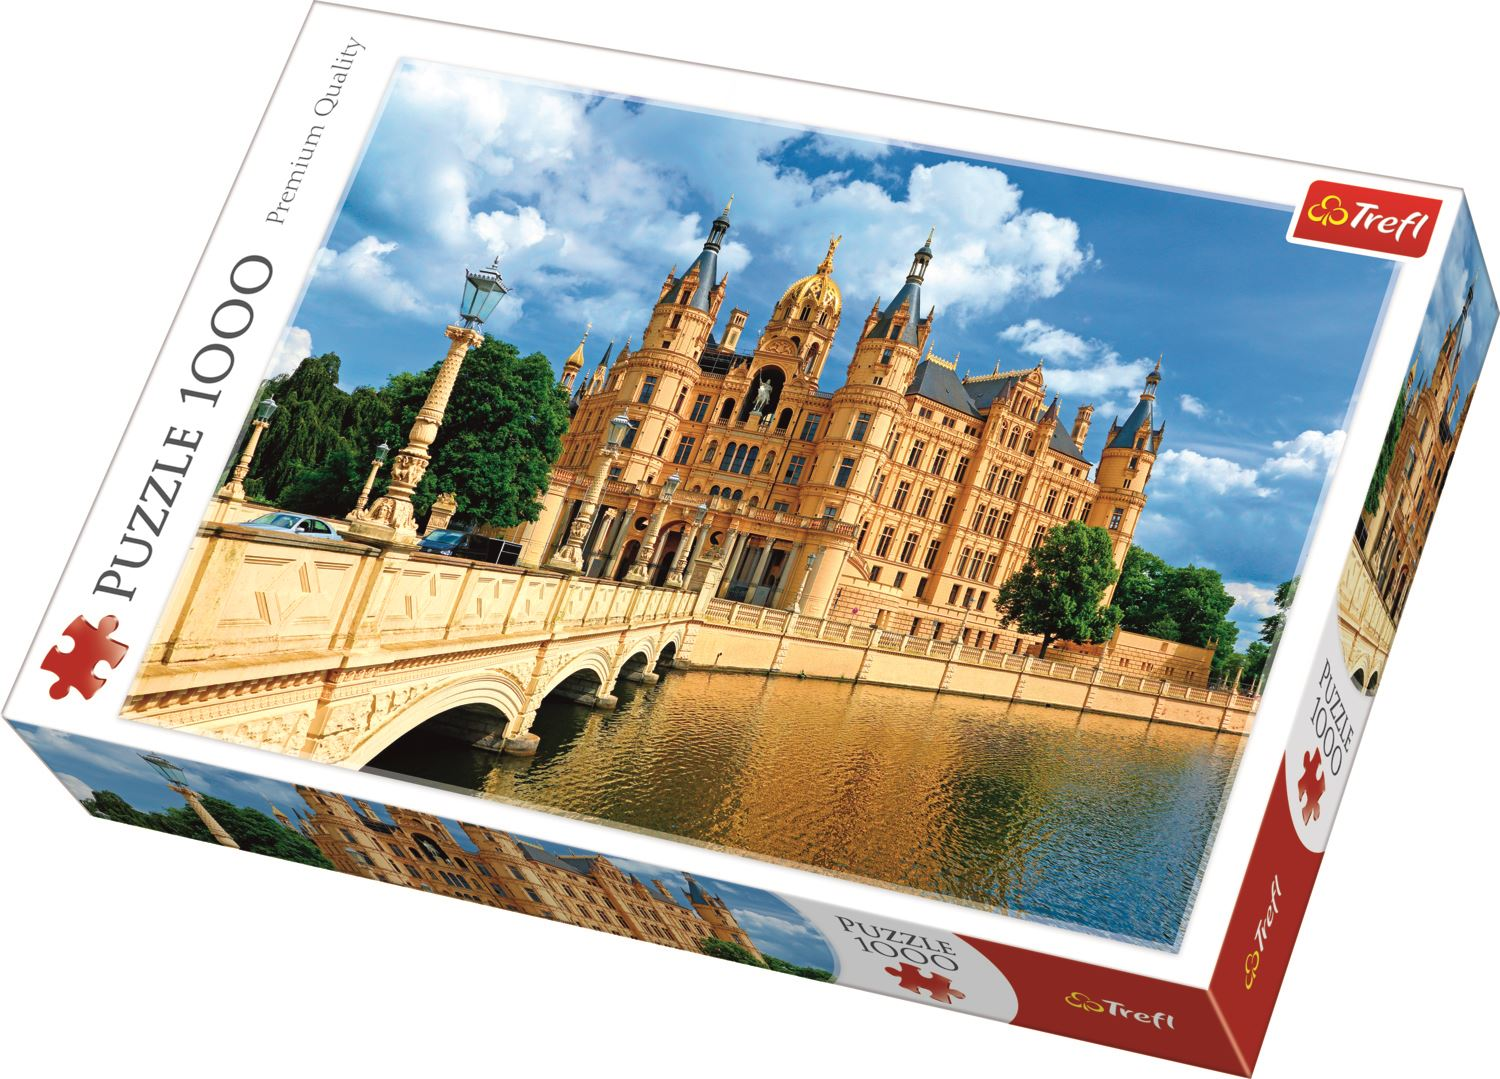 Trefl-1000-Piece-Jigsaw-Puzzle-Animals-Landscapes-Cities